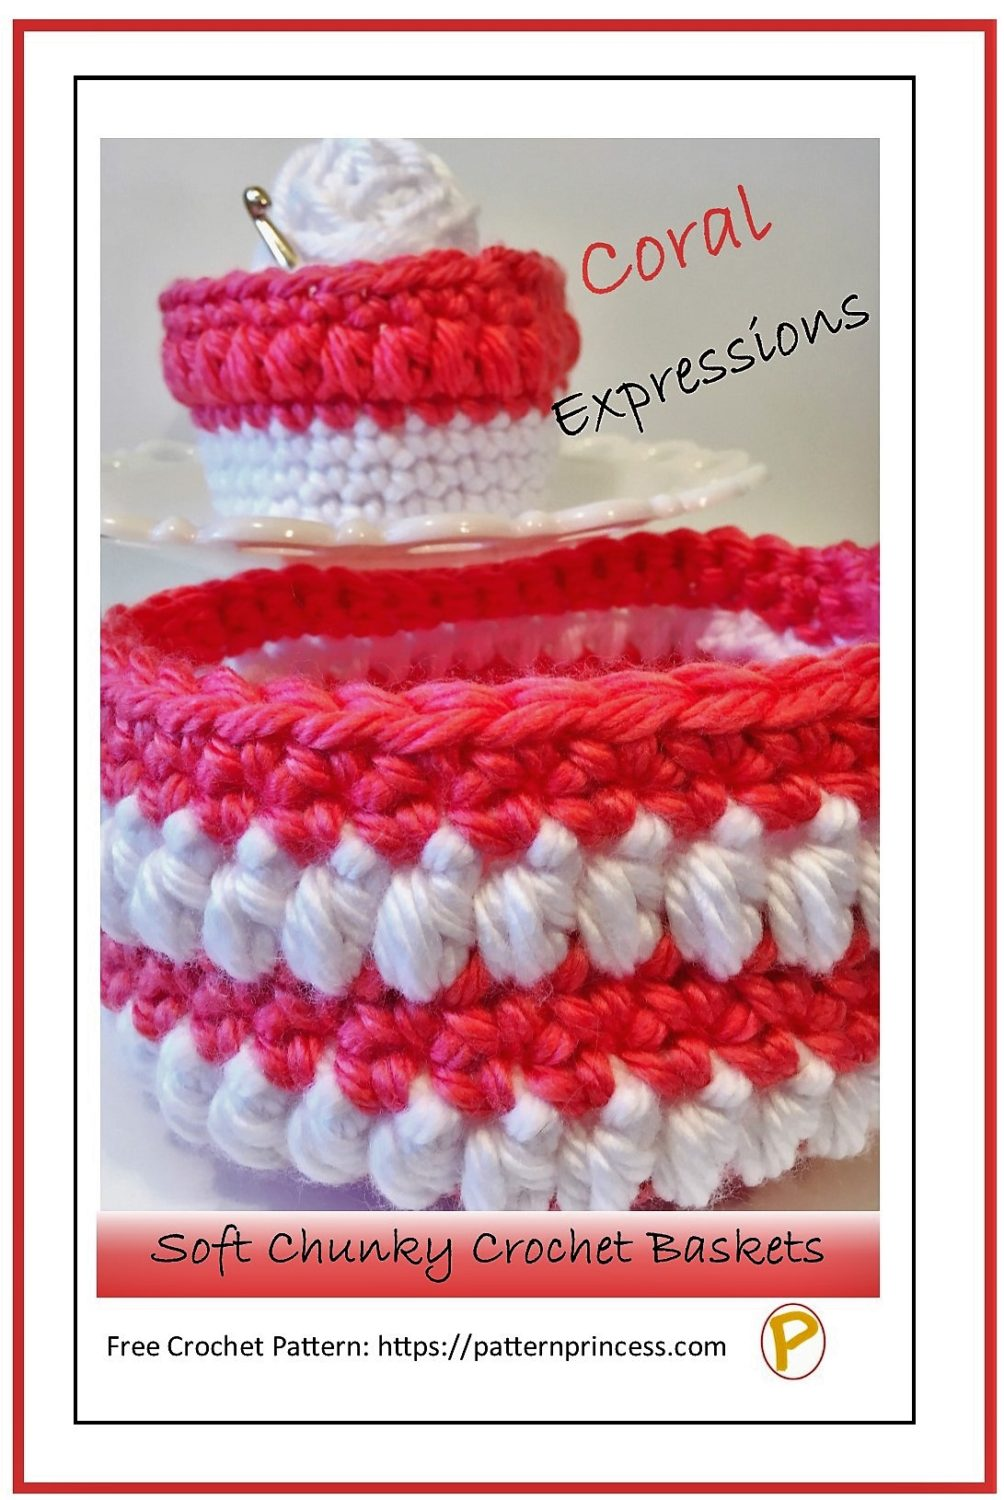 Coral Expressions Soft Chunky Crochet Baskets